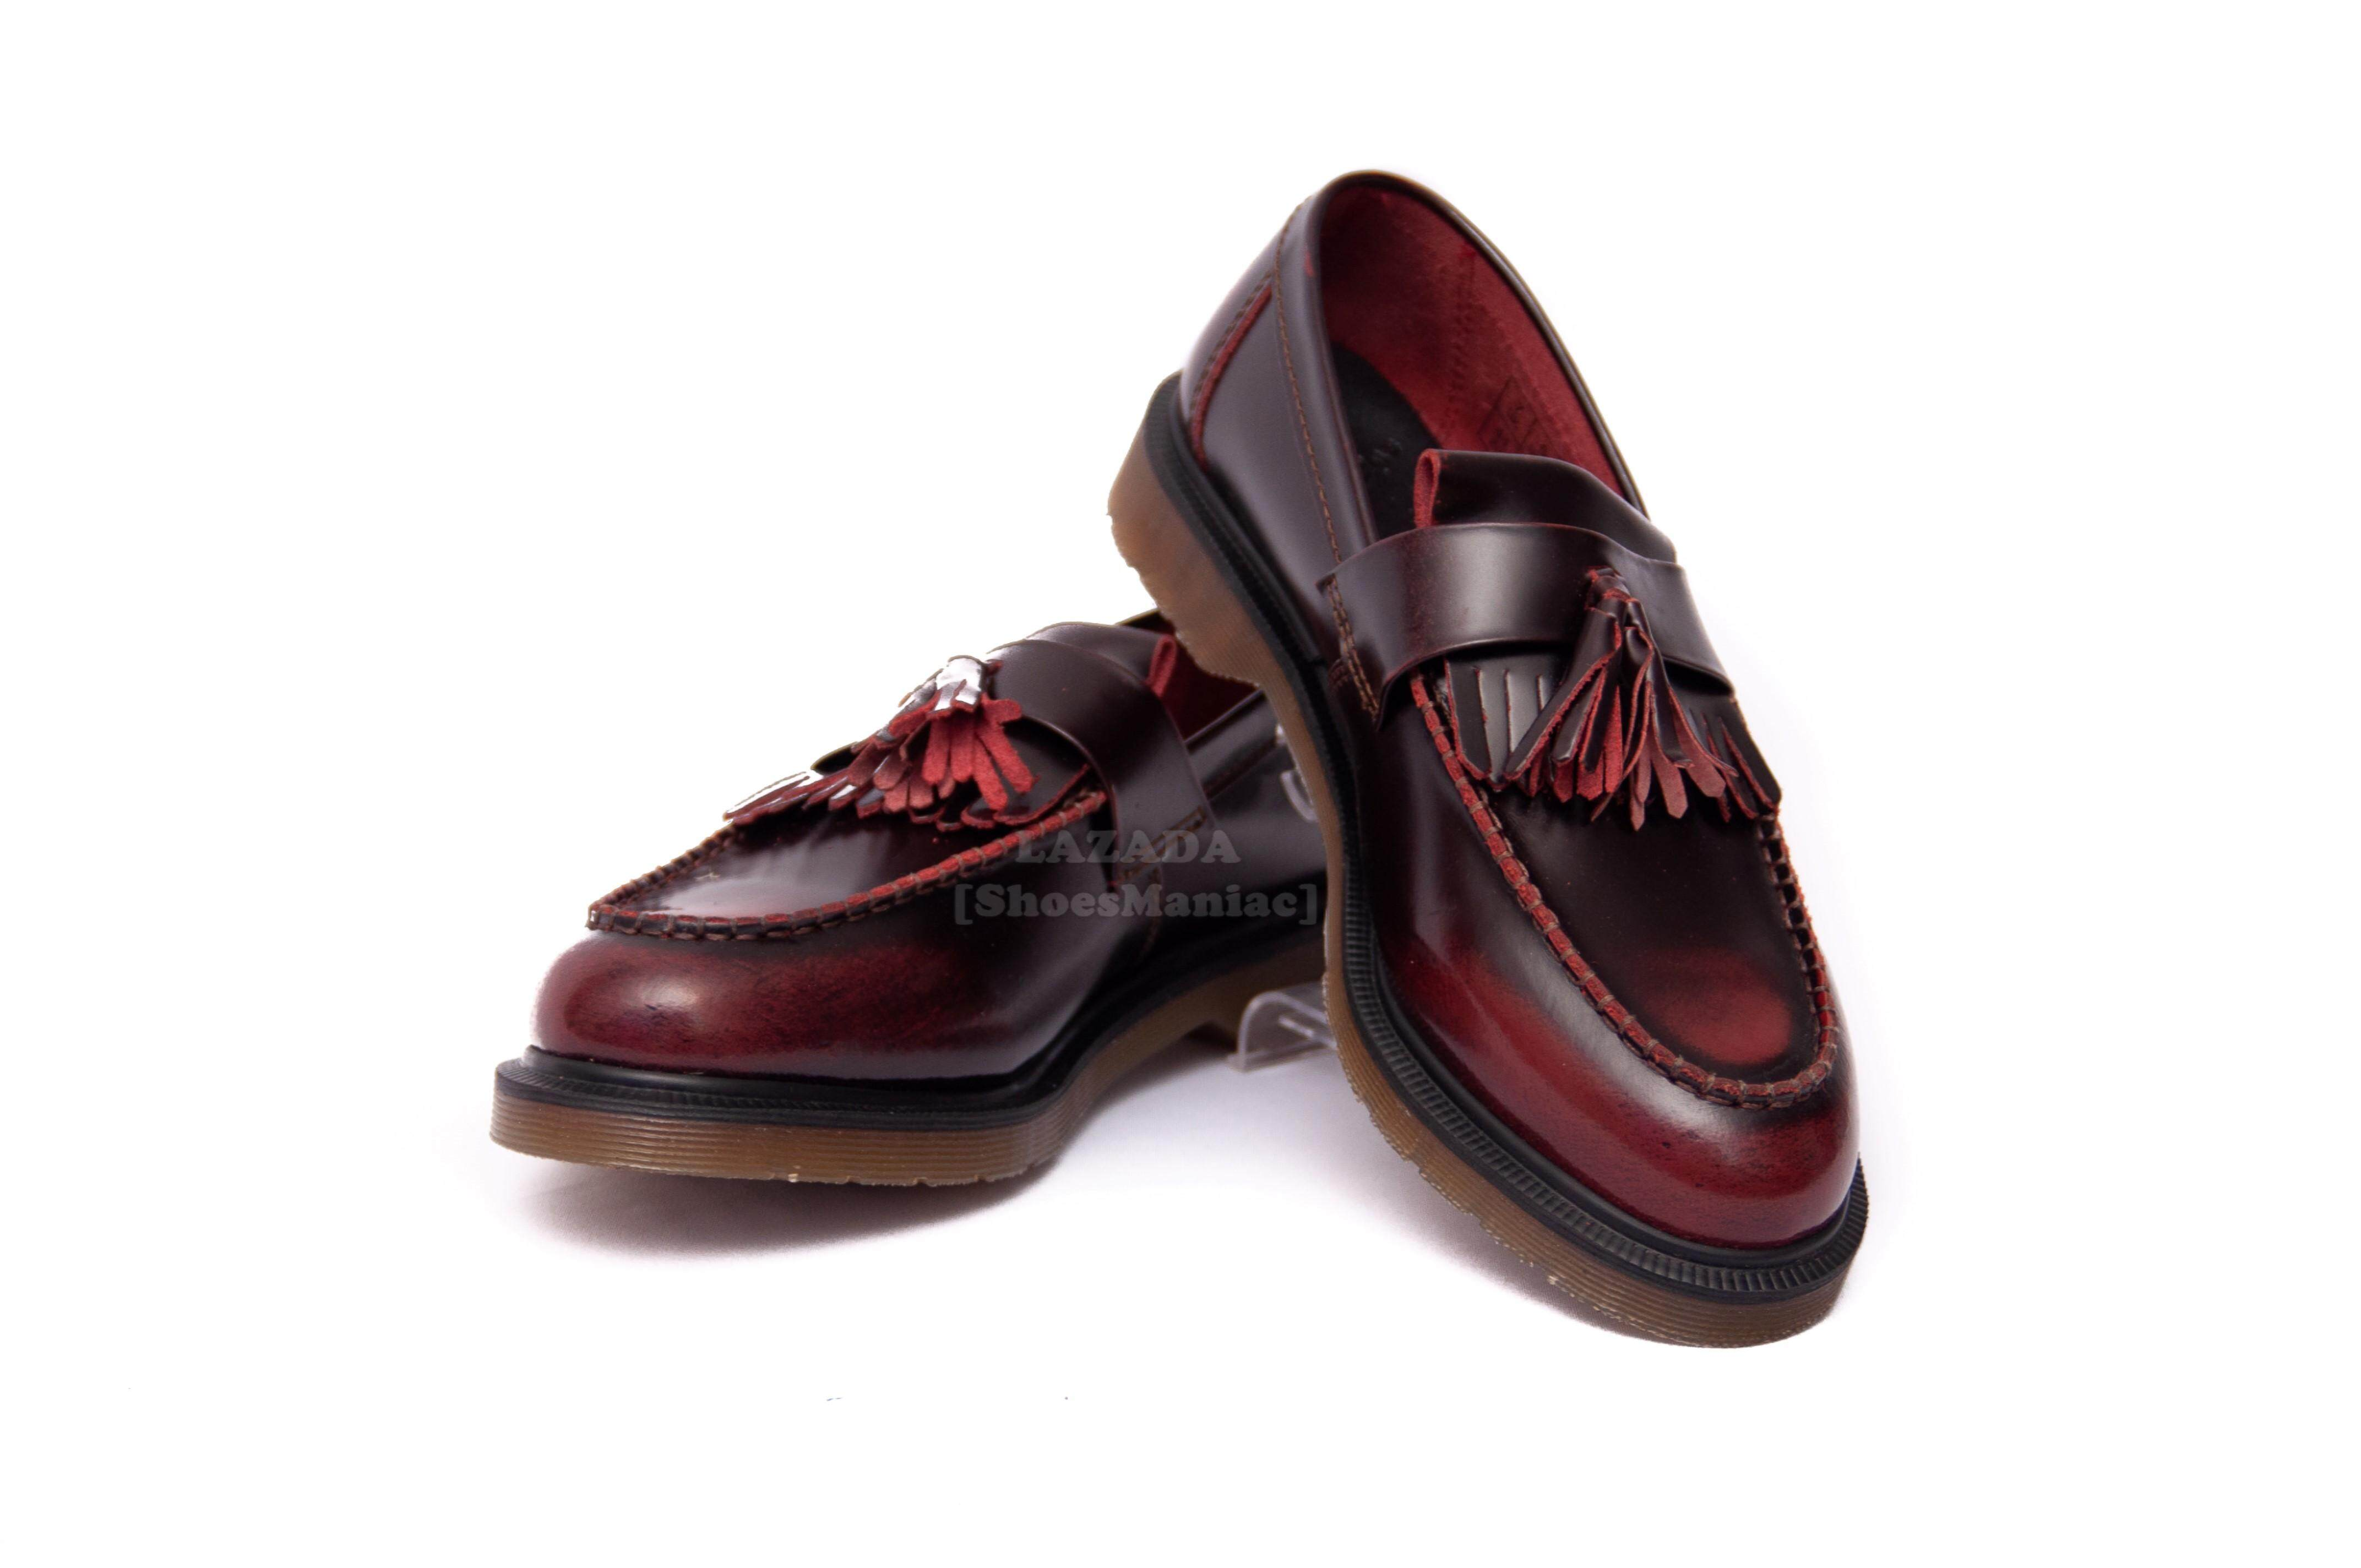 c6a580633fa Dr Martens - Buy Dr Martens at Best Price in Malaysia